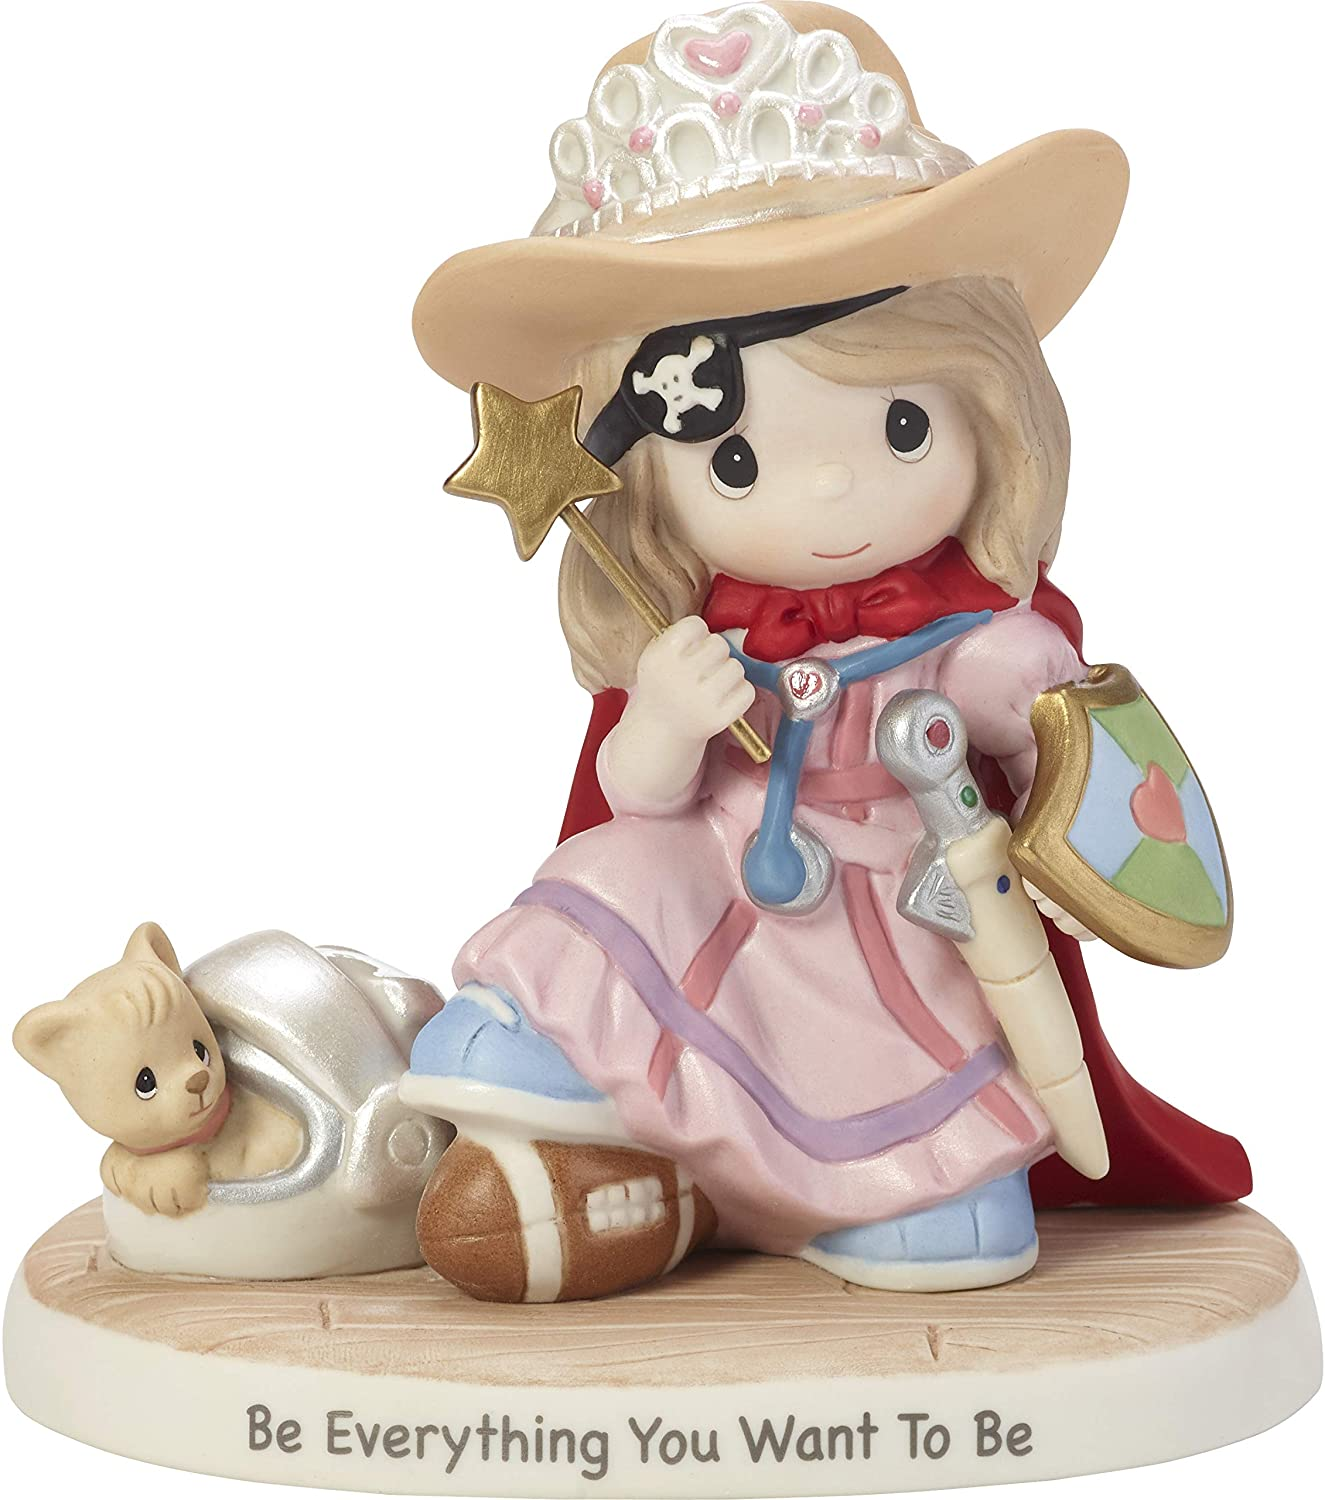 Precious Moments Be Everything You Want To Be Dress-Up Girl Bisque Porcelain Figurine 182005